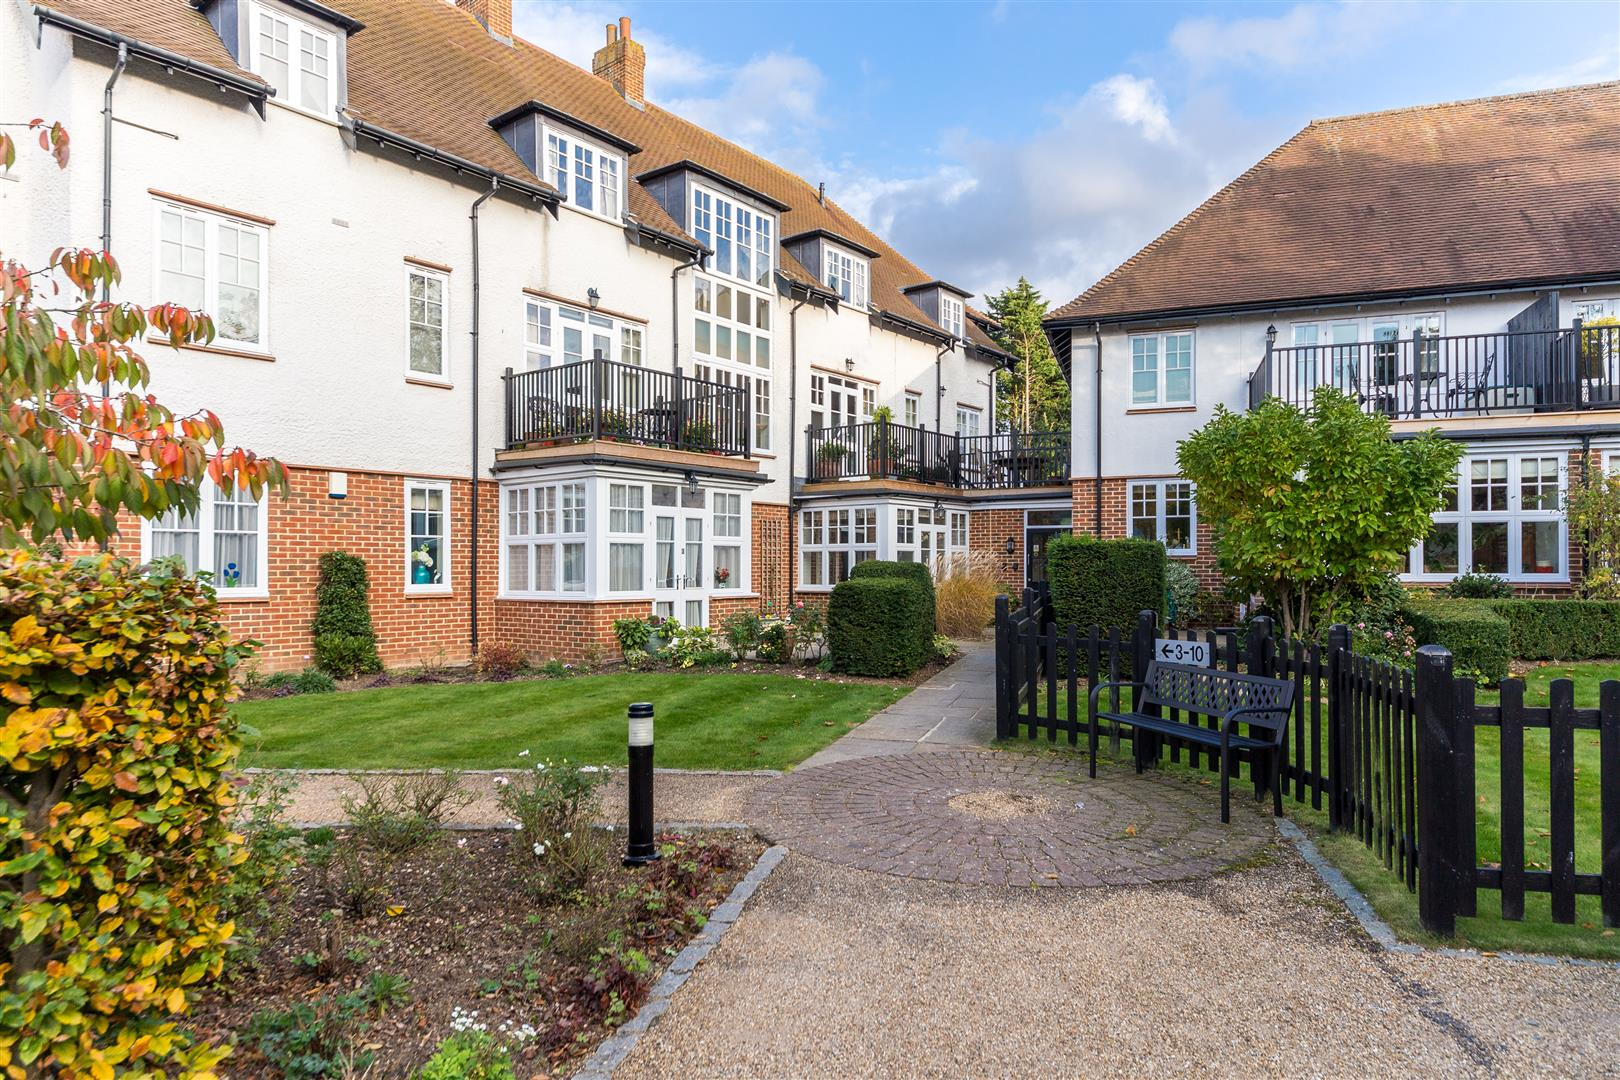 Property for sale in letchworth garden city hertfordshire mouseprice for Letchworth swimming pool prices